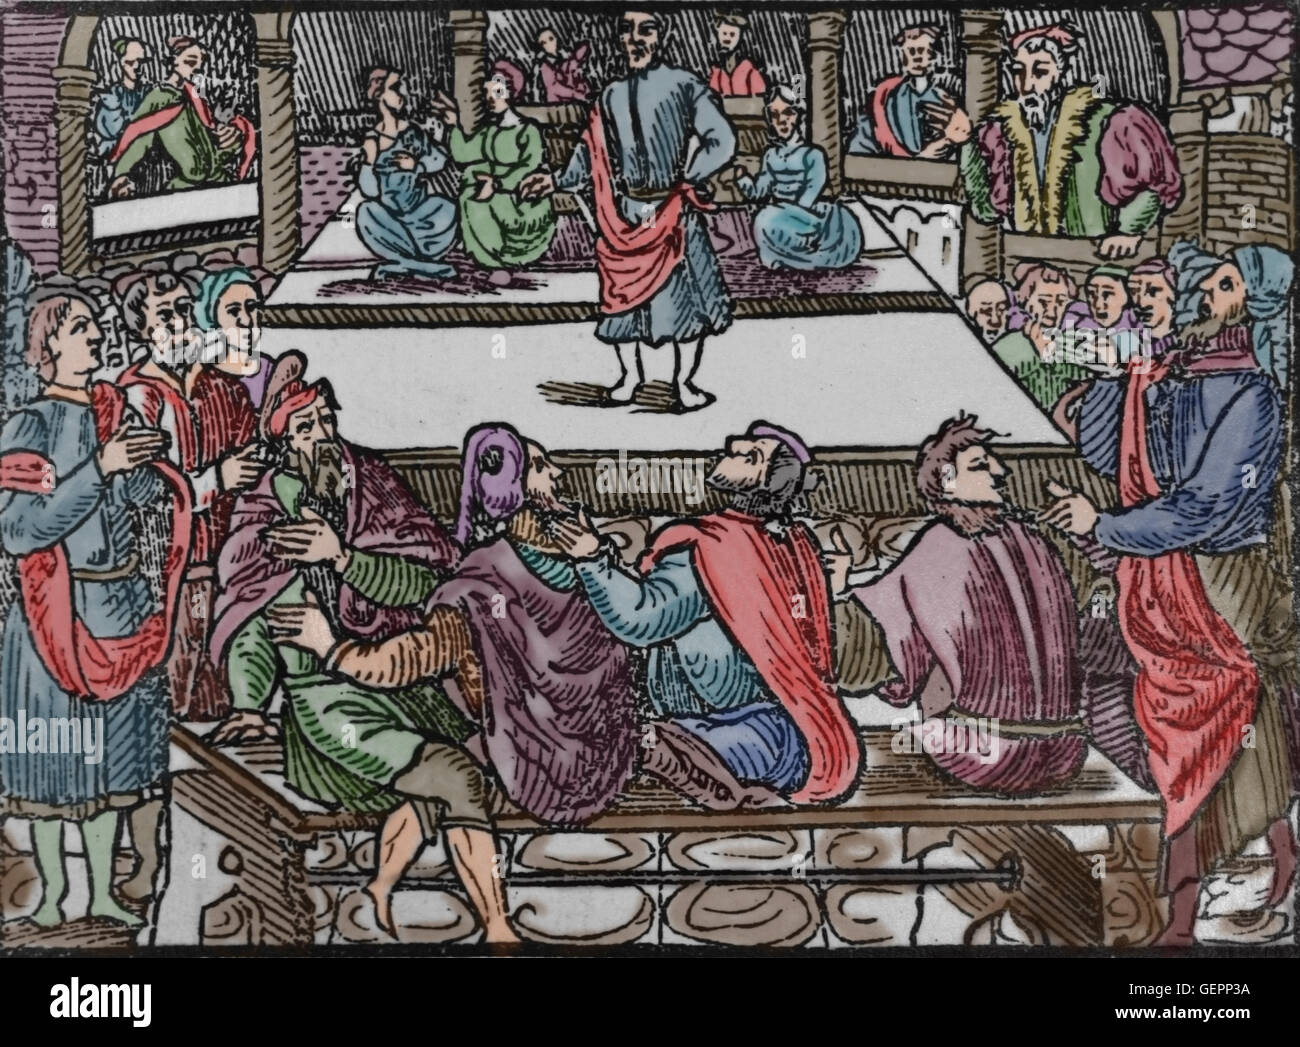 Latin literature. Theatre performance in France (16th century) imitating classical times. Colored engraving. - Stock Image